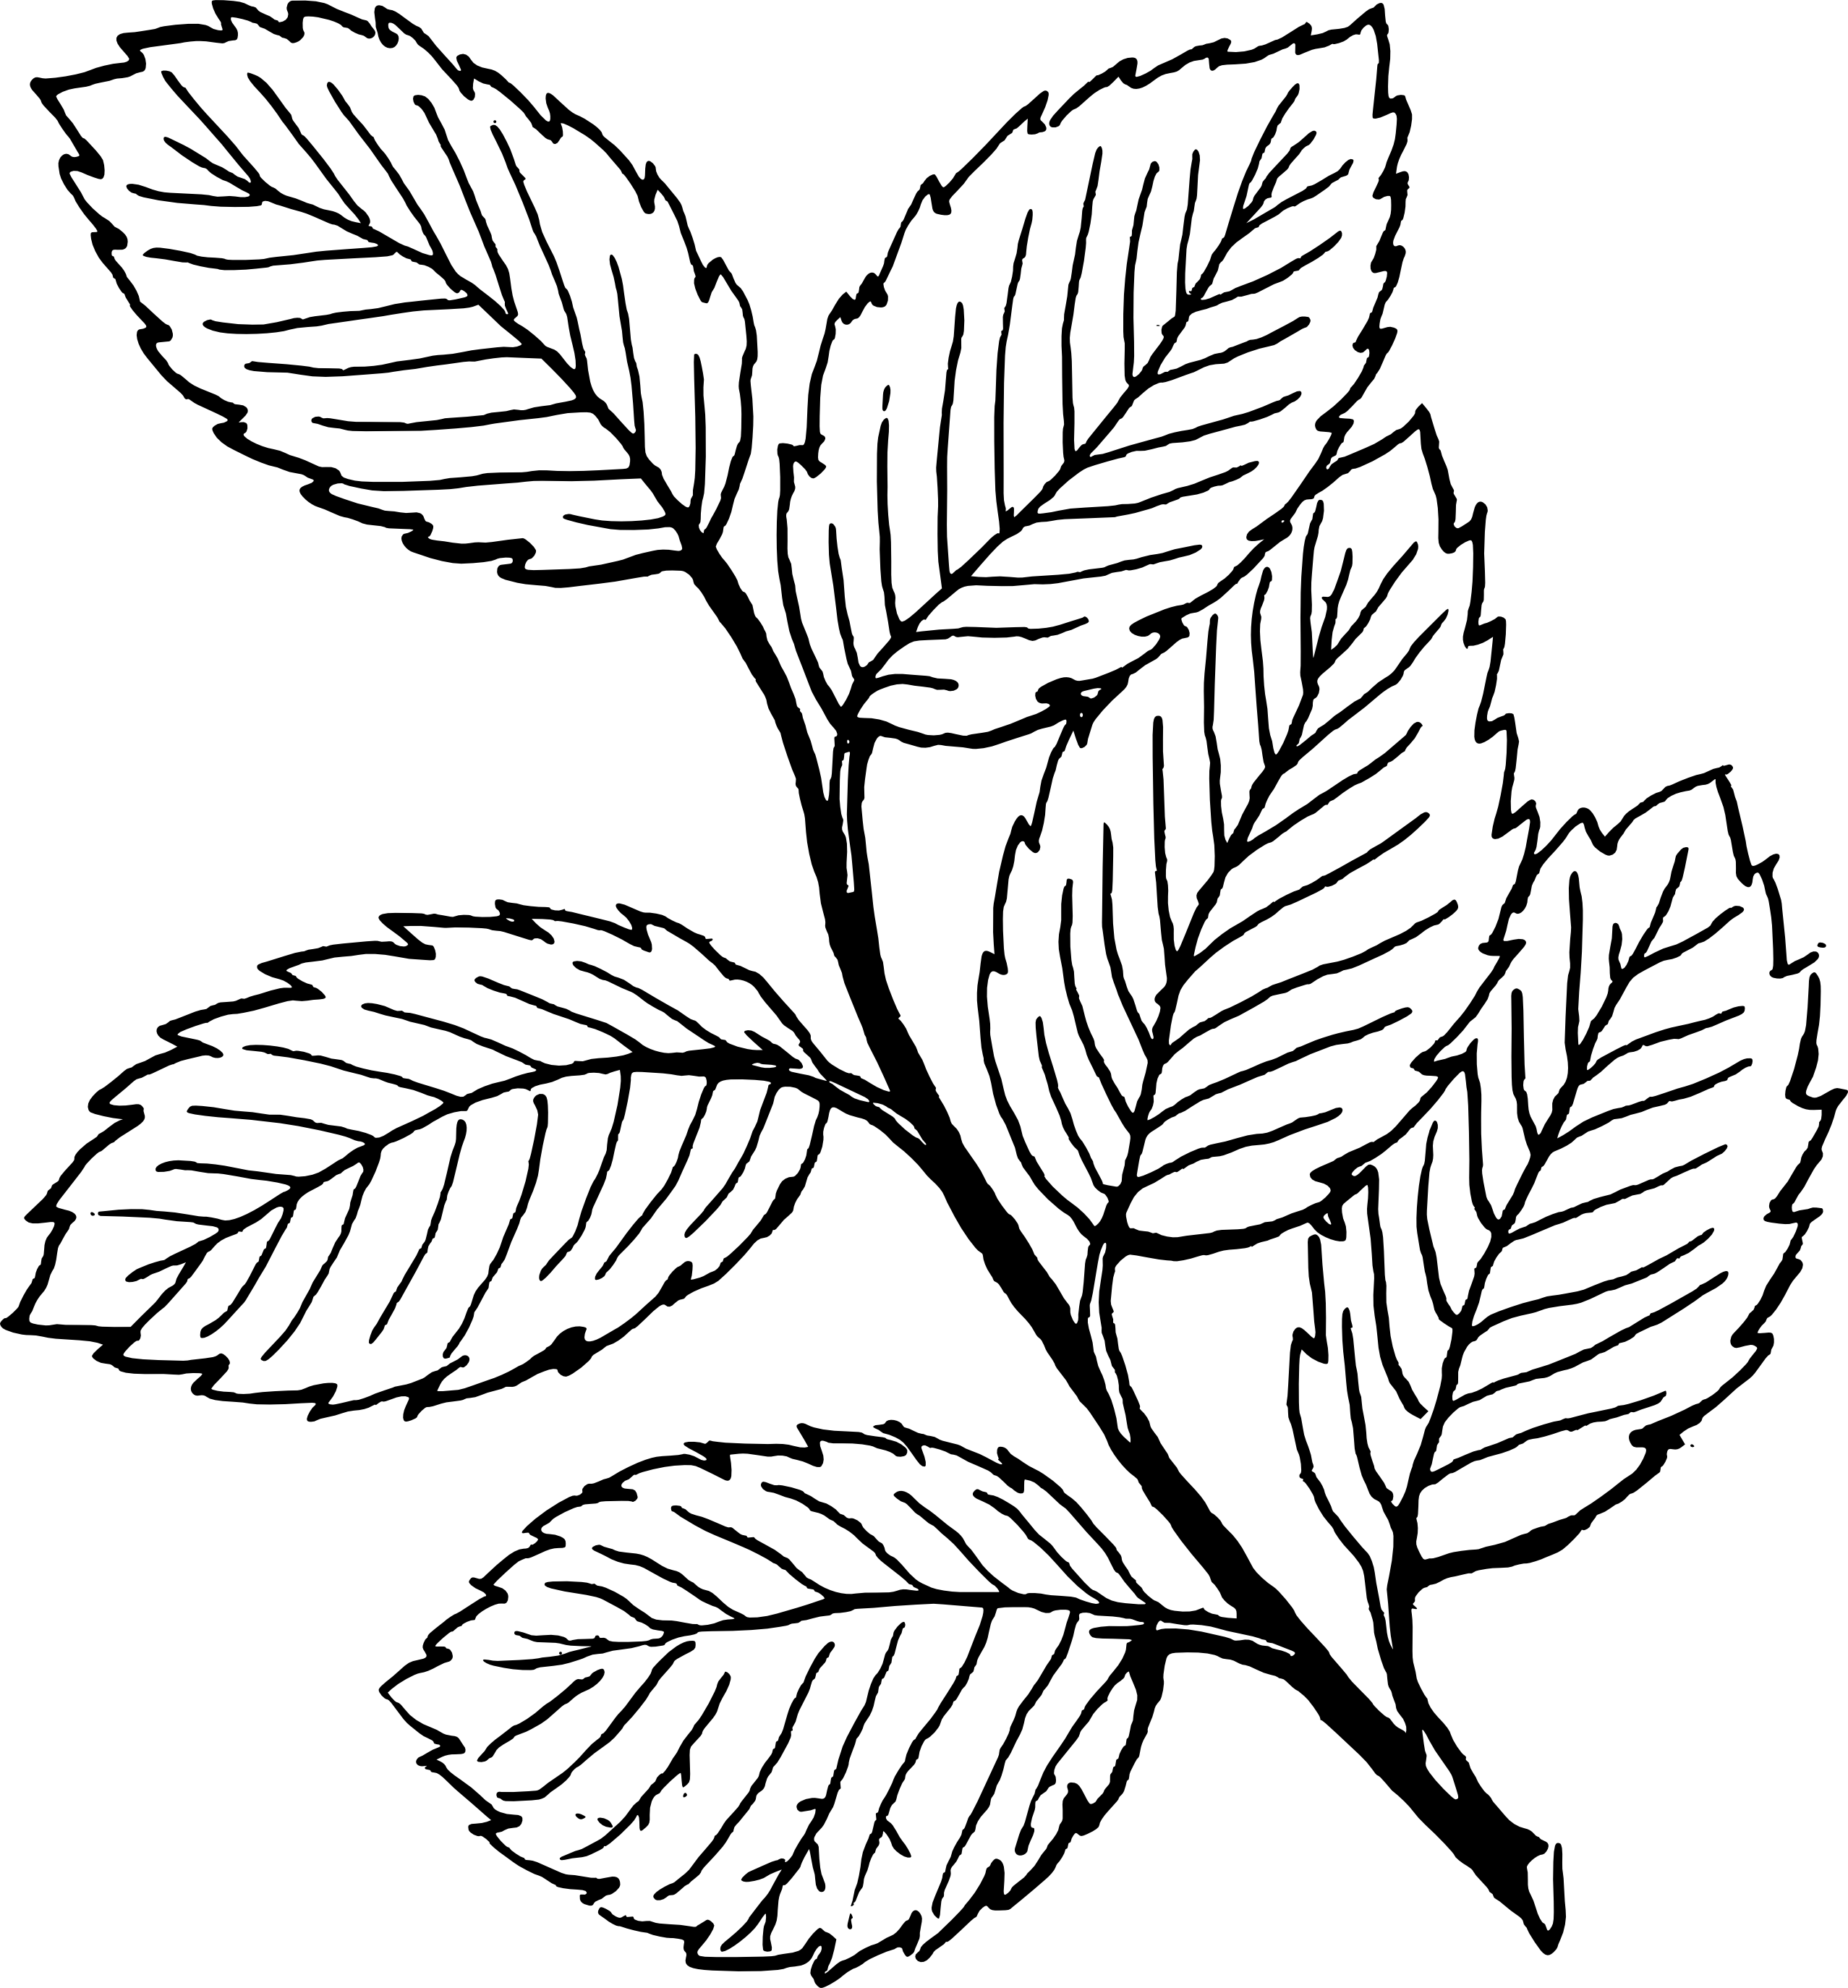 Fall Leaves Clip Art Black And White - Cliparts.co